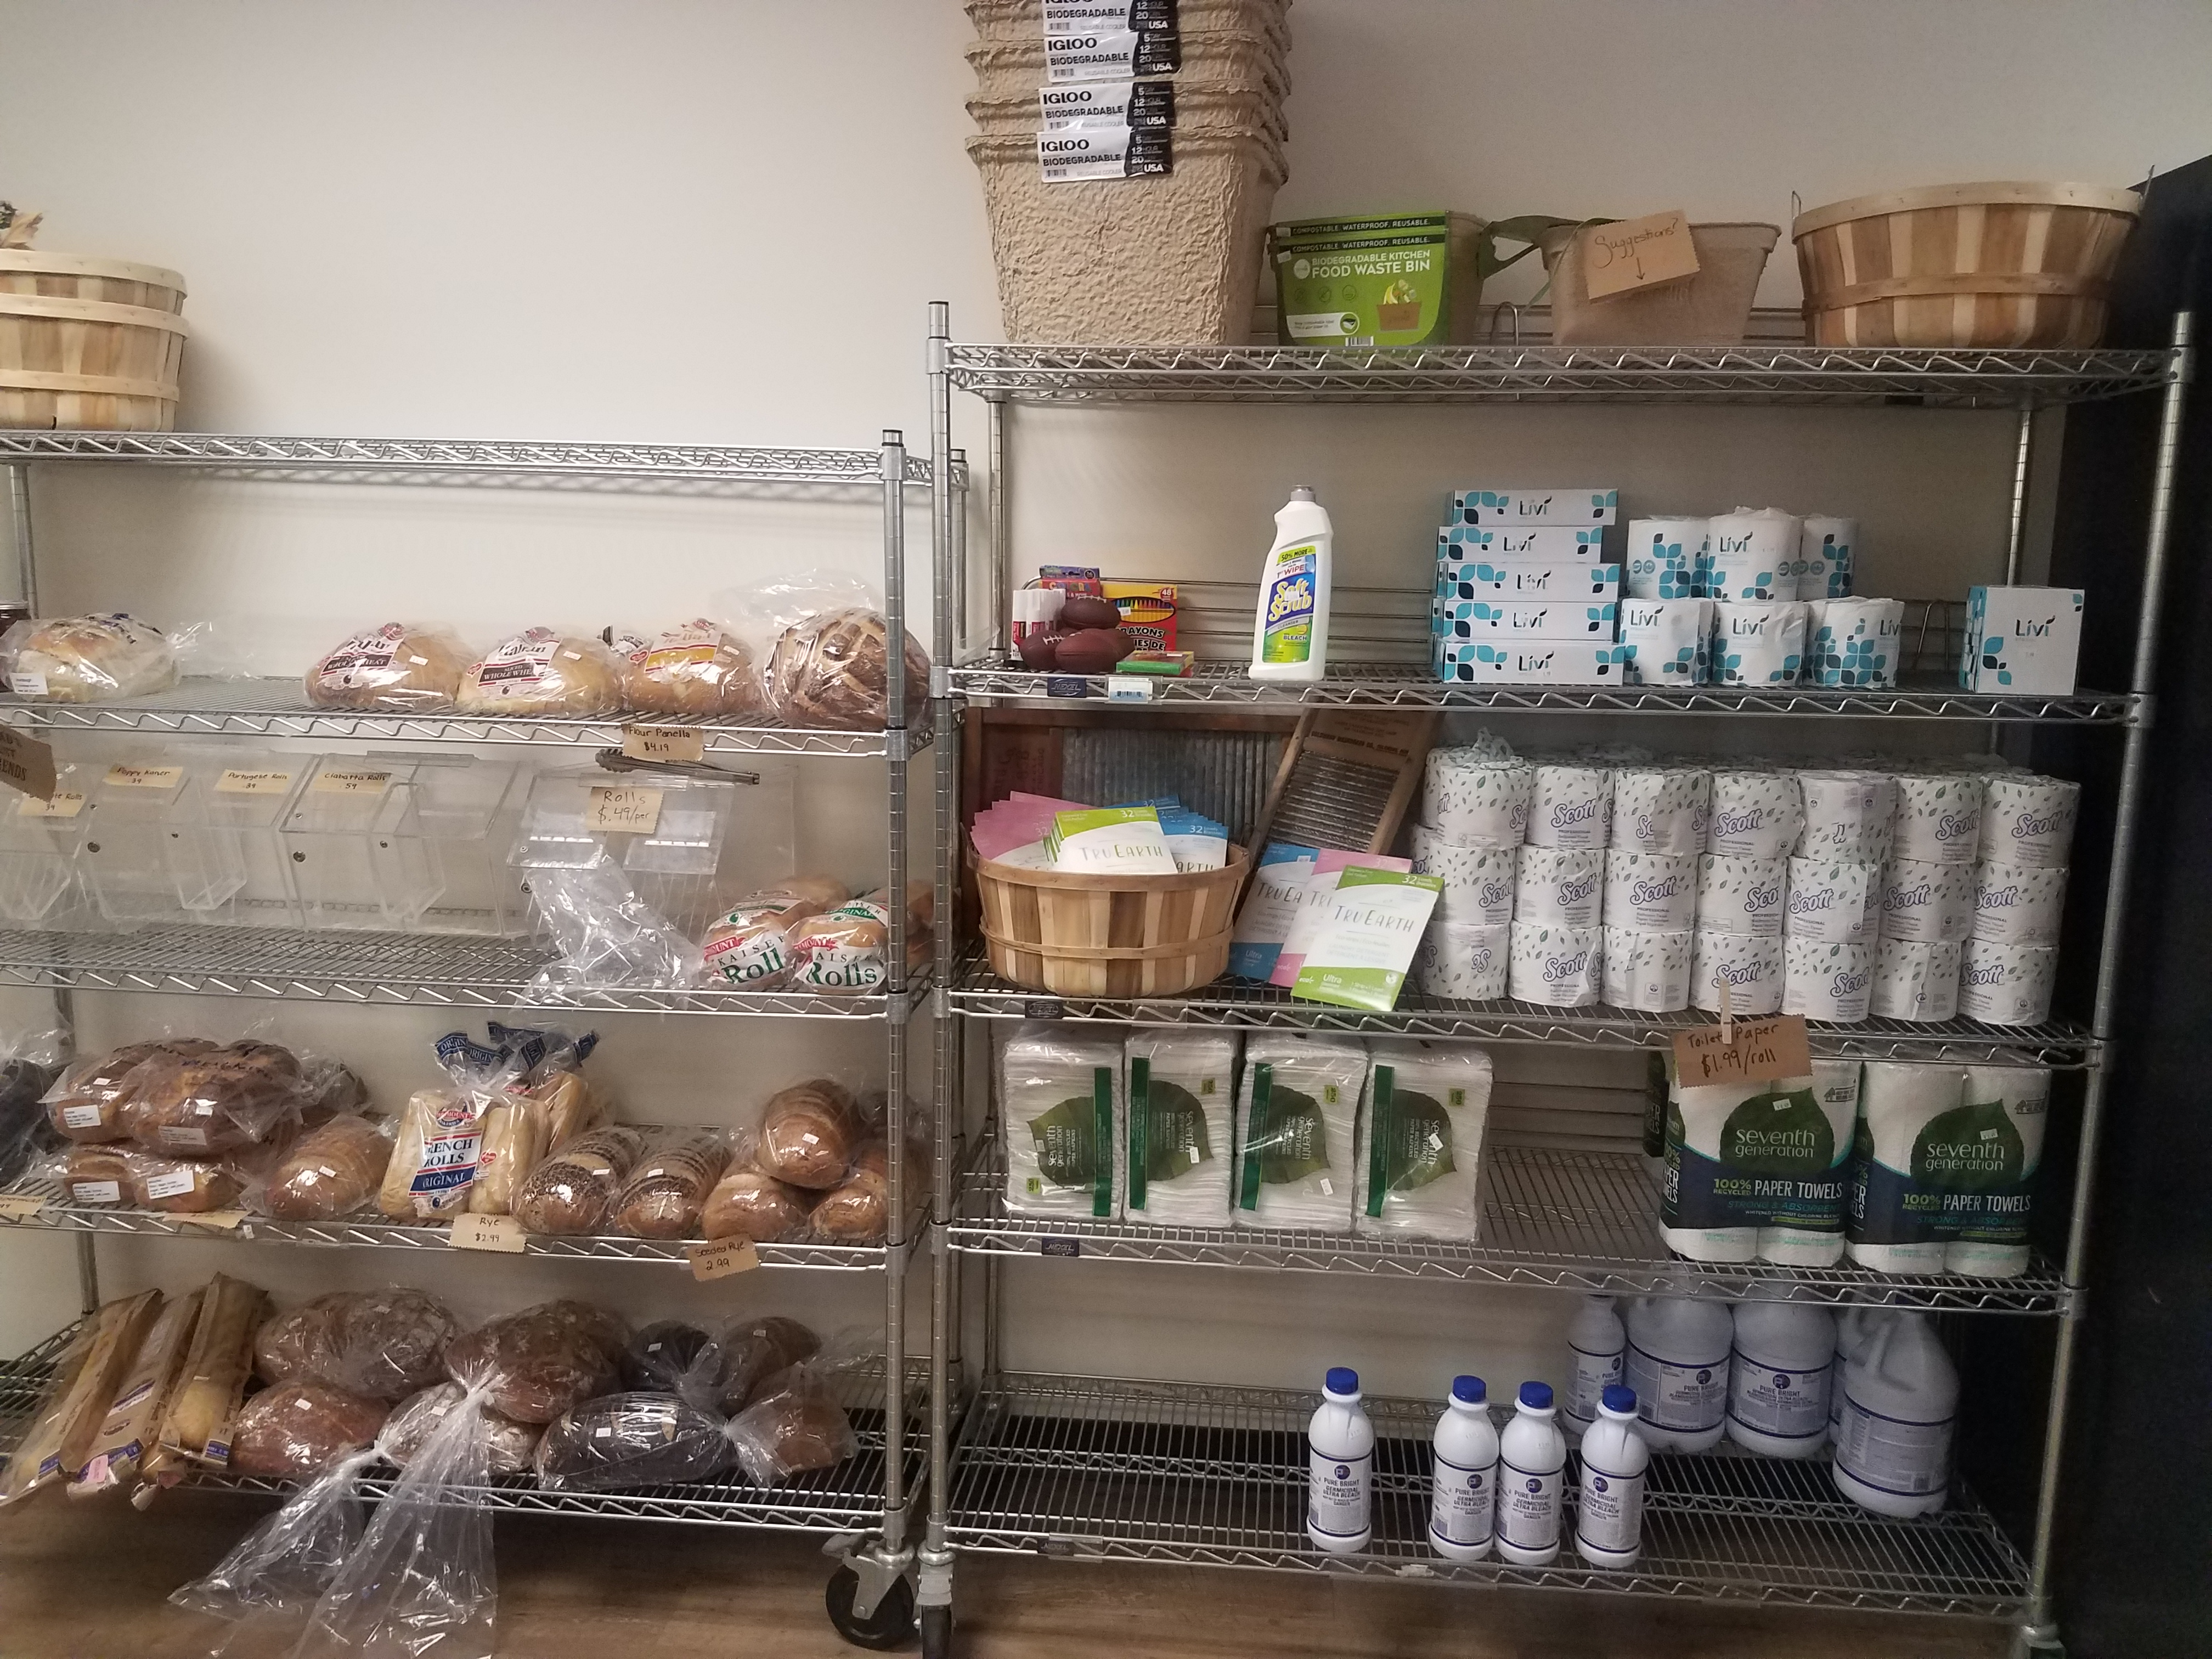 A photo of two metal wire racks, one with multiple rows of bread, and one with multiple rows of cleaning supplies. This includes toilet paper, bleach, laundry detergent strips, and gloves.